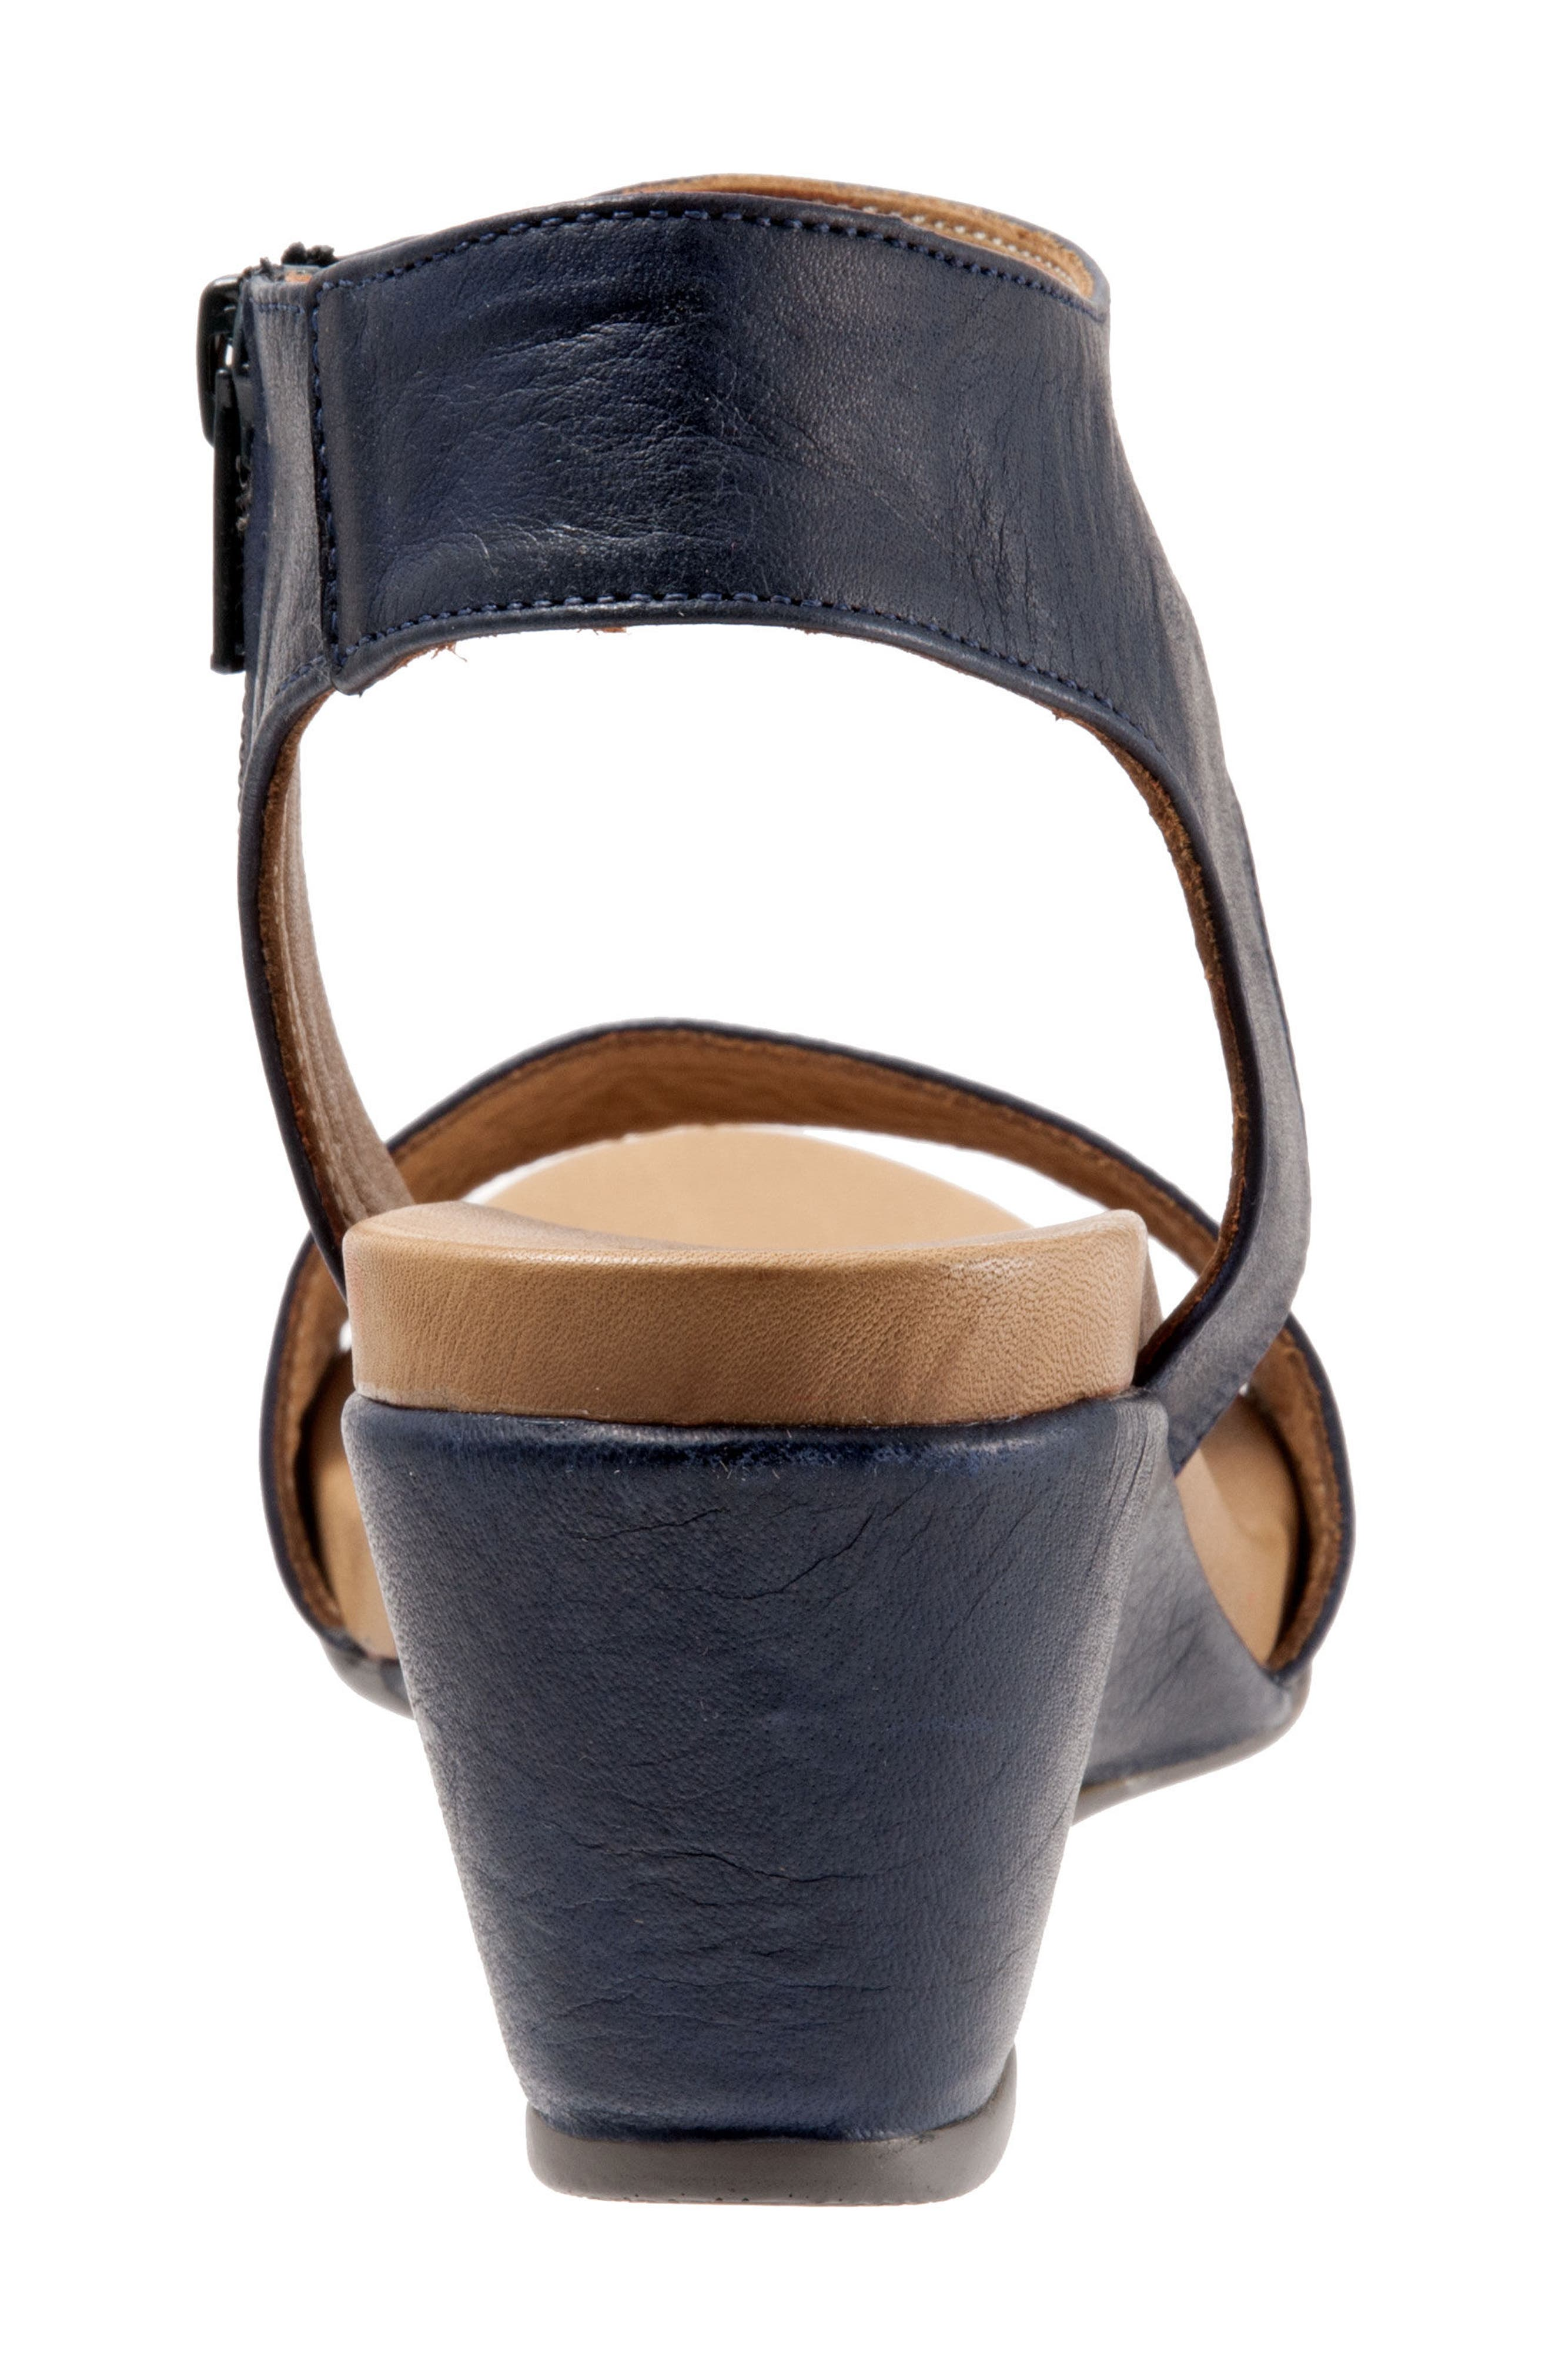 Ida Wedge Sandal,                             Alternate thumbnail 6, color,                             Black Leather